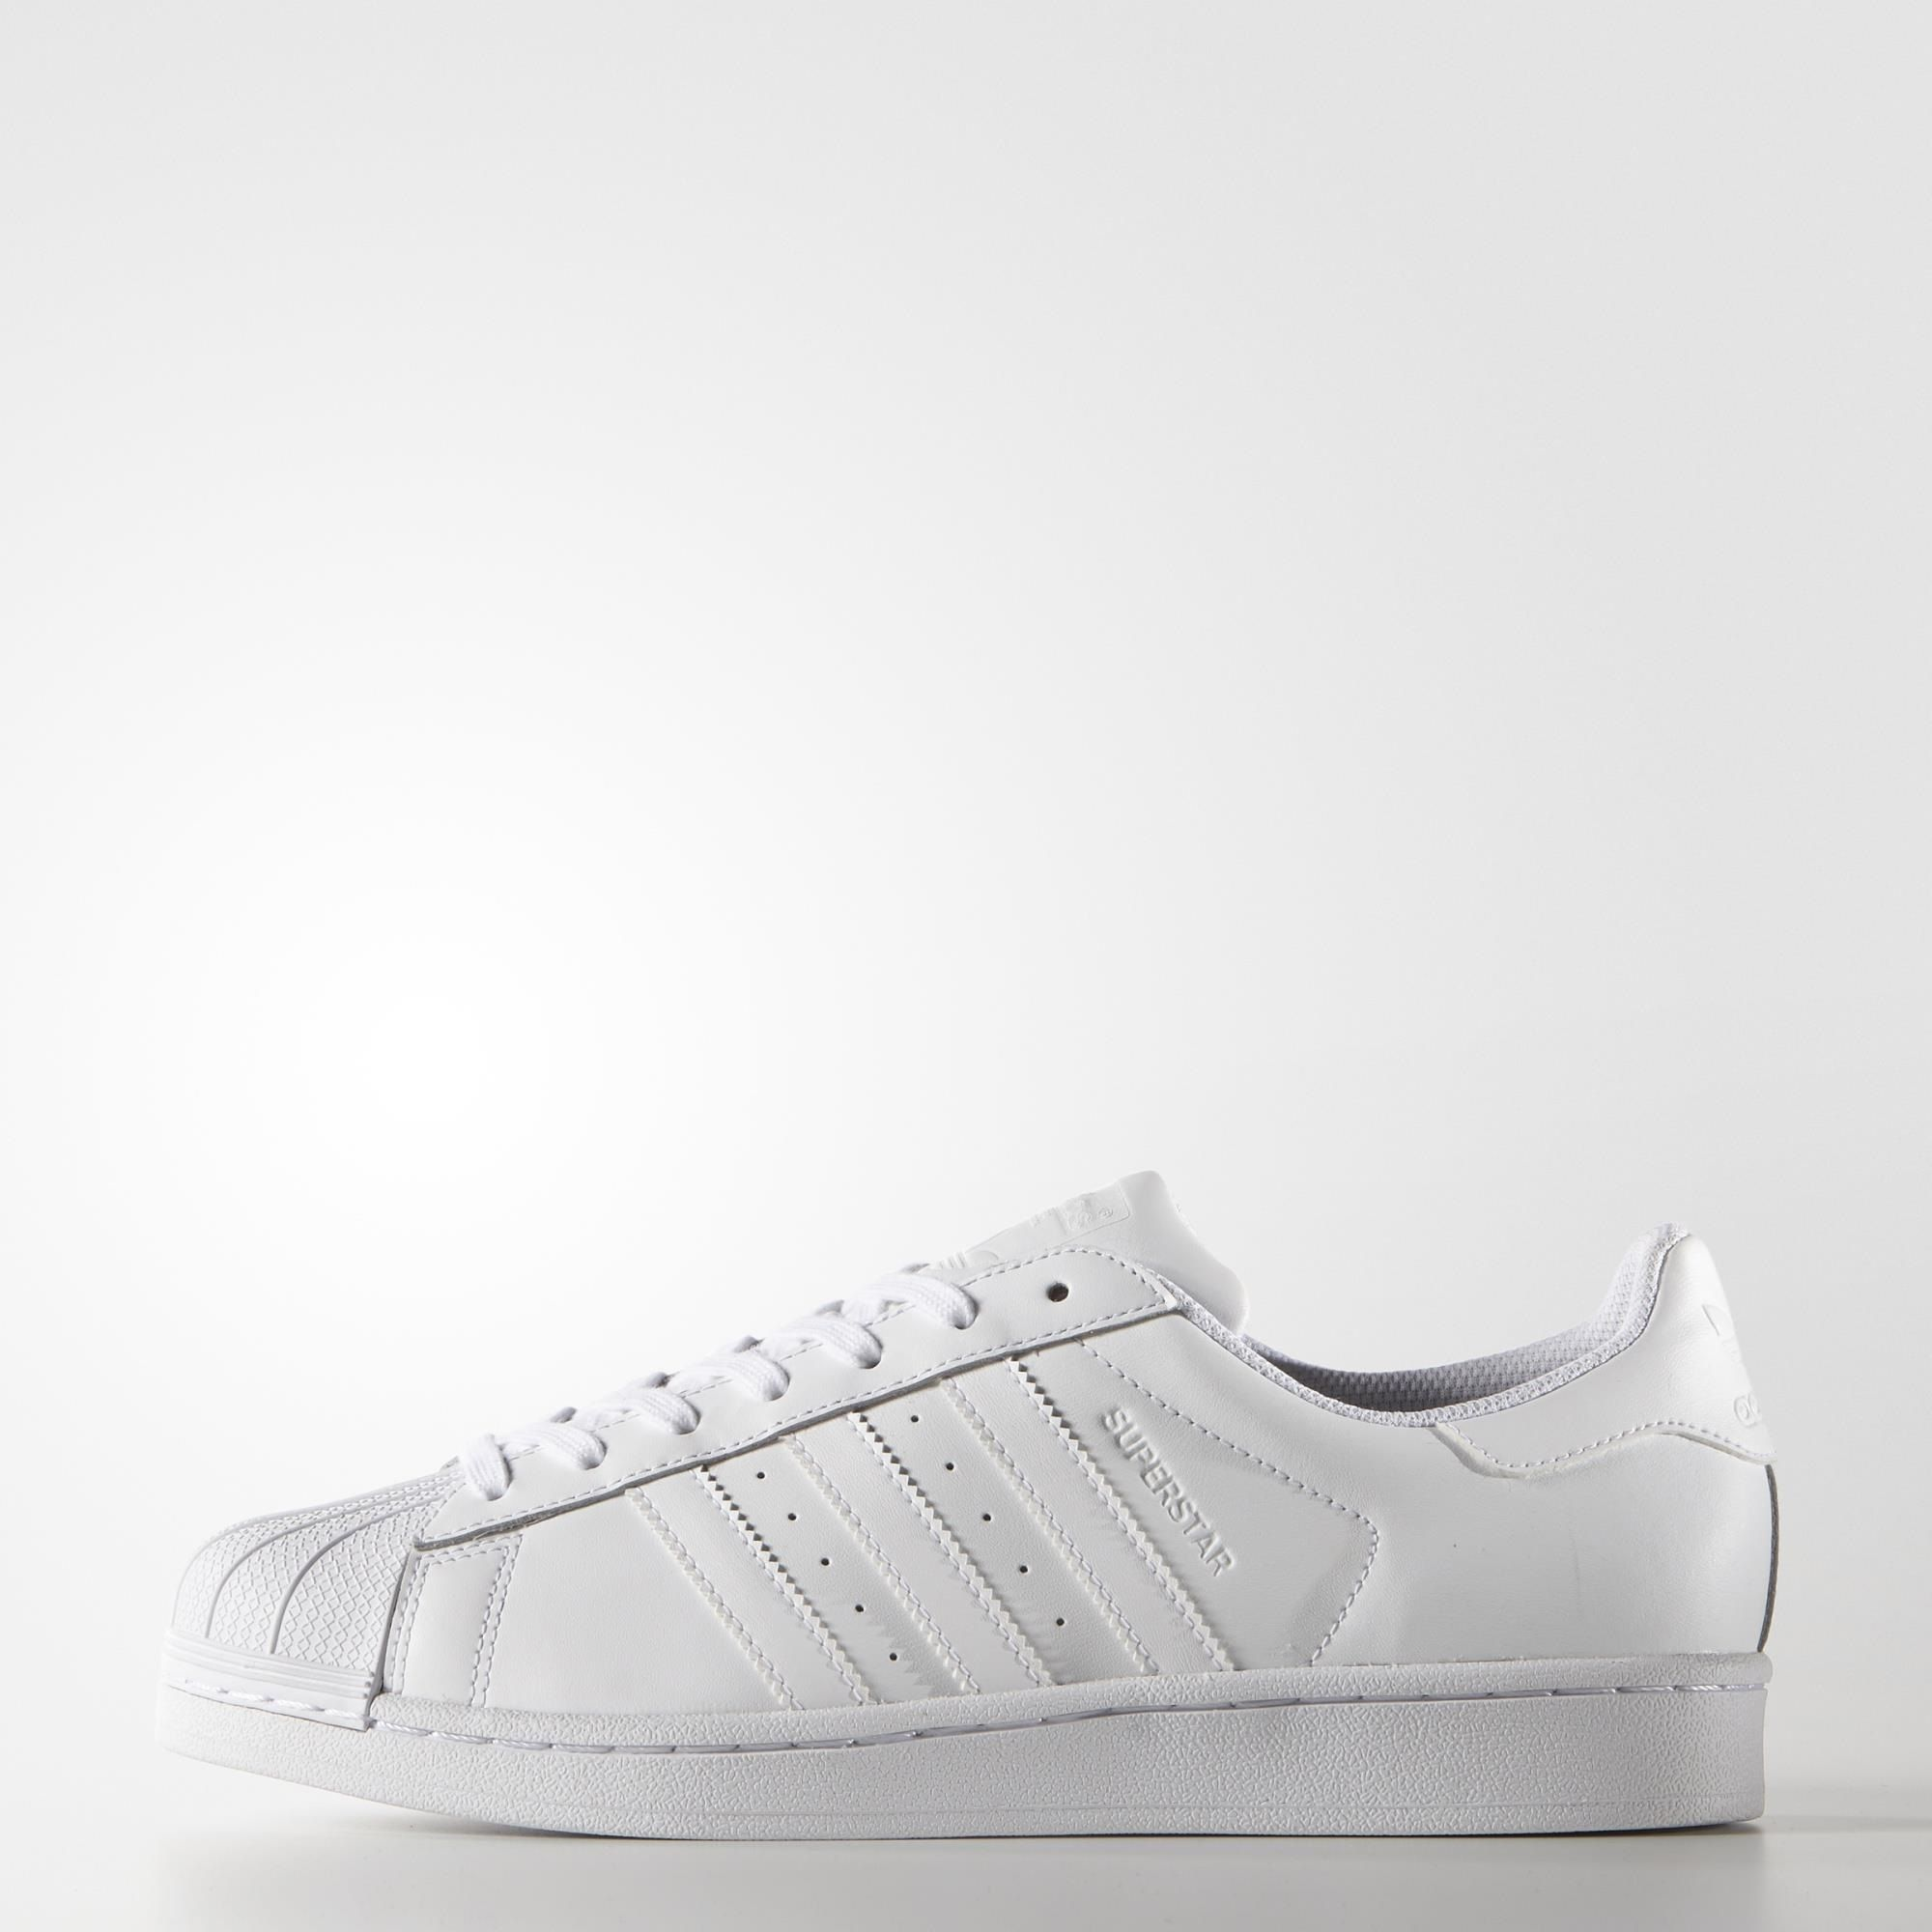 online retailer 457a4 9148d A modern manifestation of the original. The adidas Superstar was born in  the 70s as a court-dominating b-ball shoe, but it was soon infiltrating ...